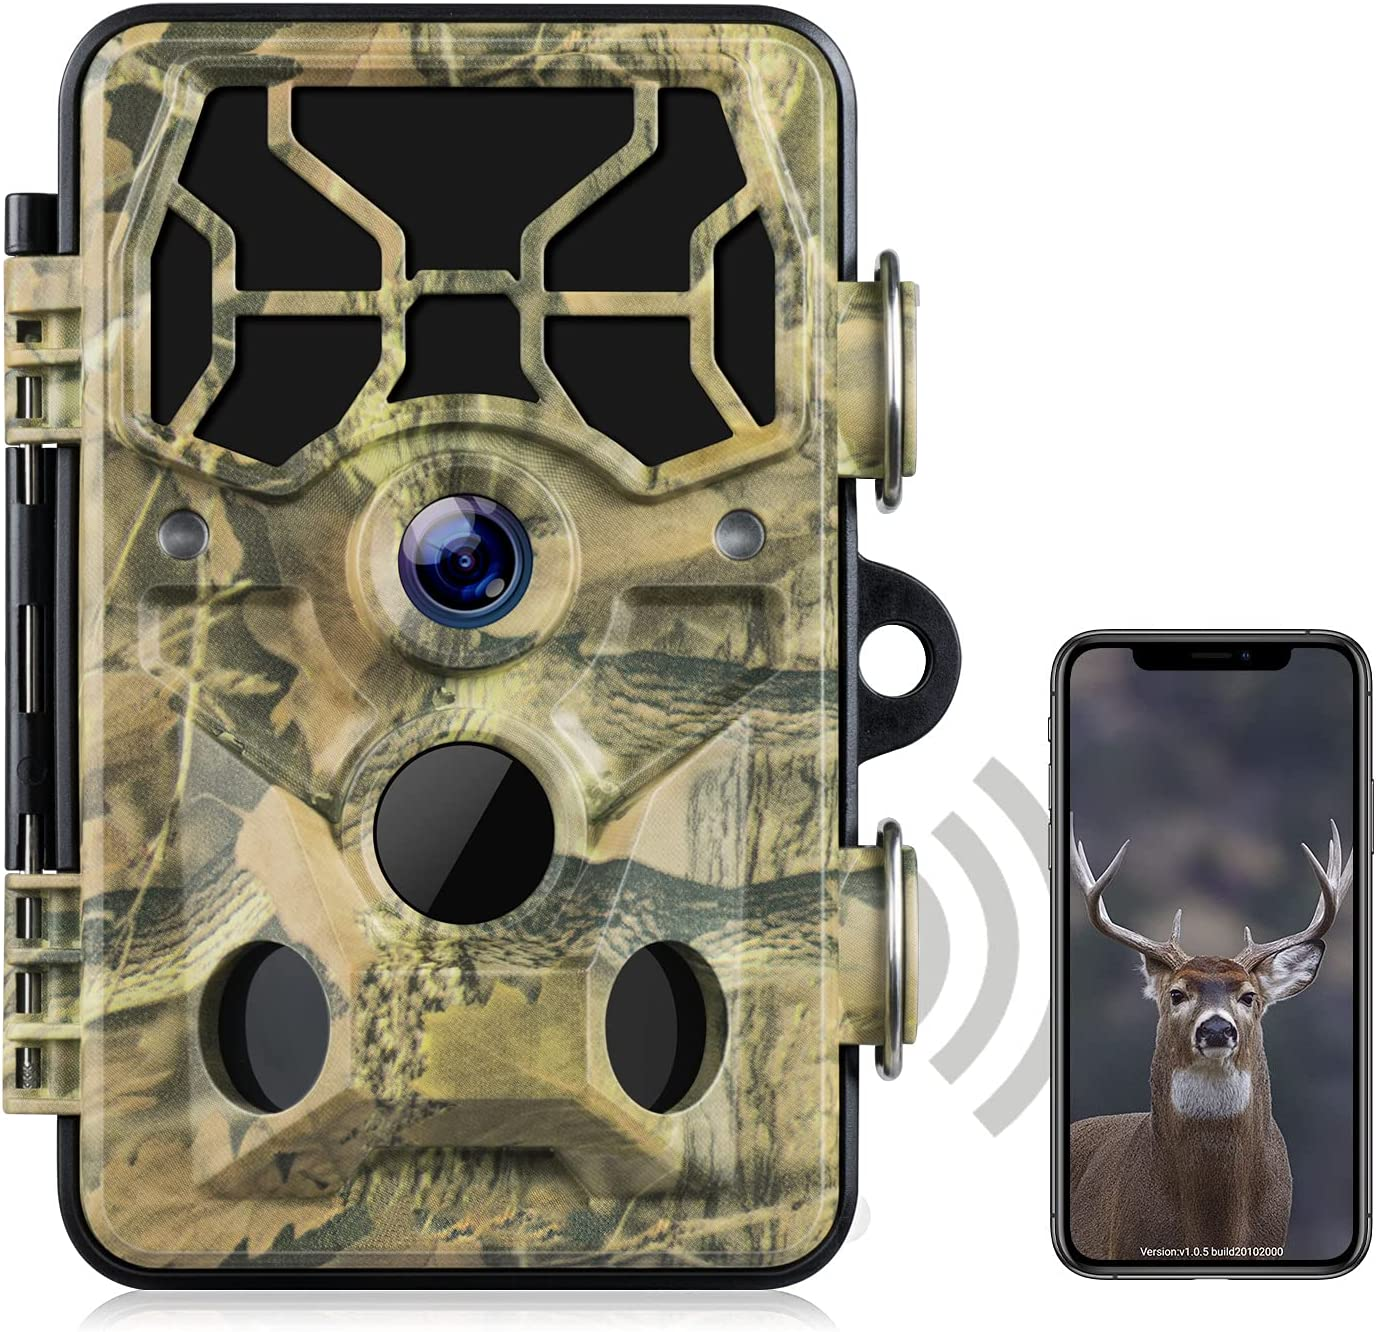 CAMPARKCAM Now free shipping WiFi OFFicial store Trail Camera-Bluetooth 1296P Game Hunting C 20MP